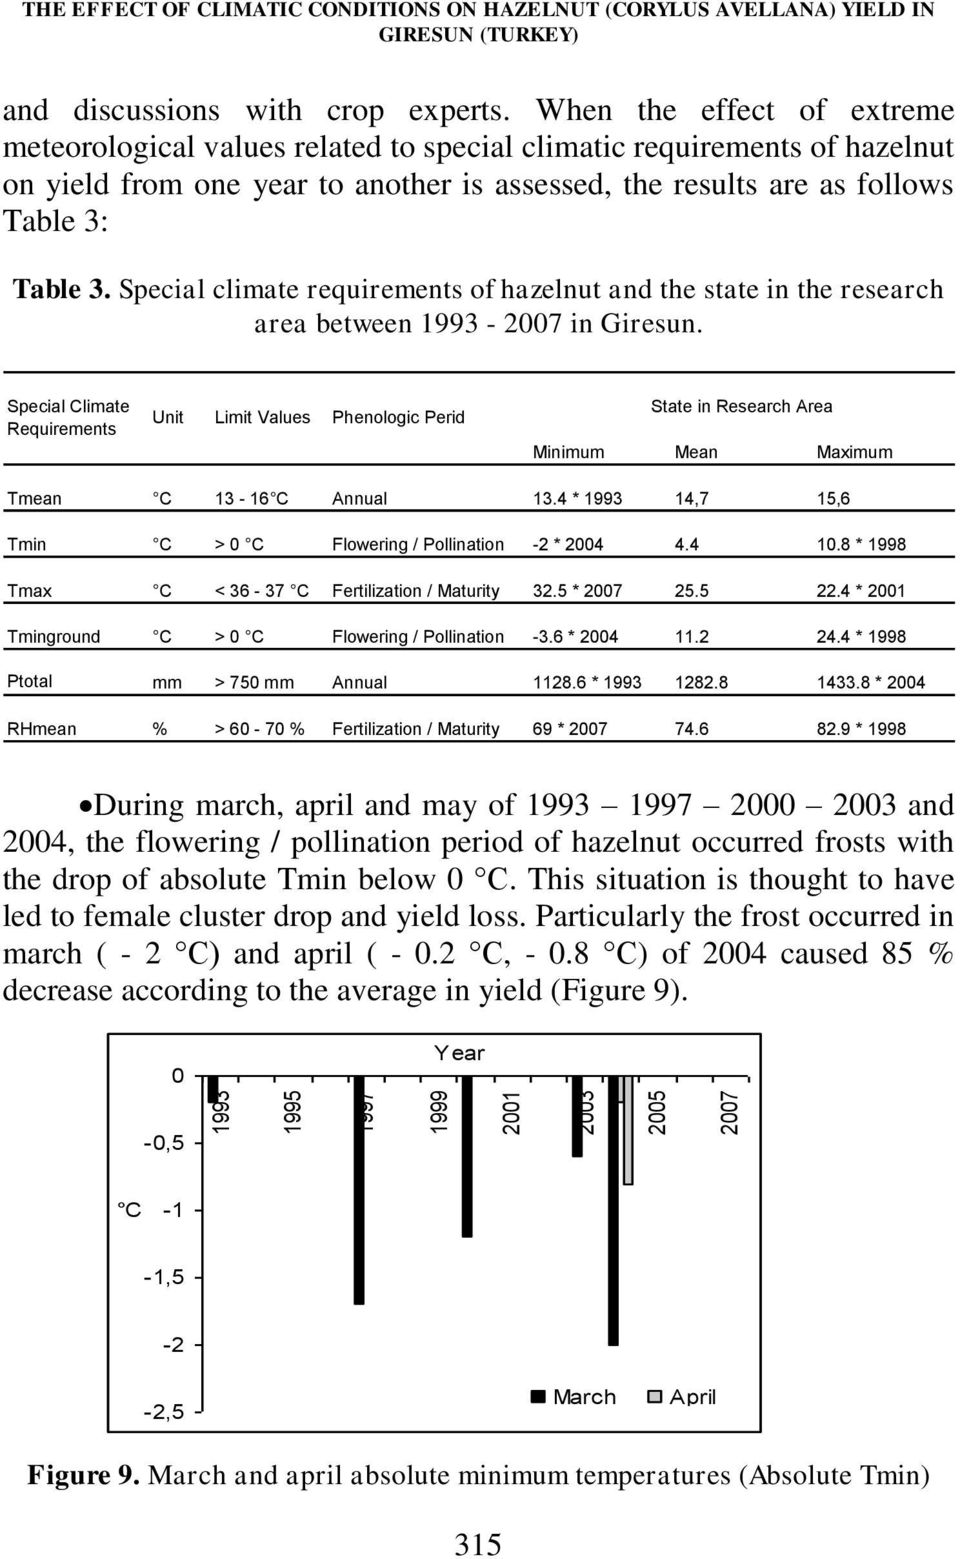 Special climate requirements of hazelnut and the state in the research area between 1993-2007 in Giresun.